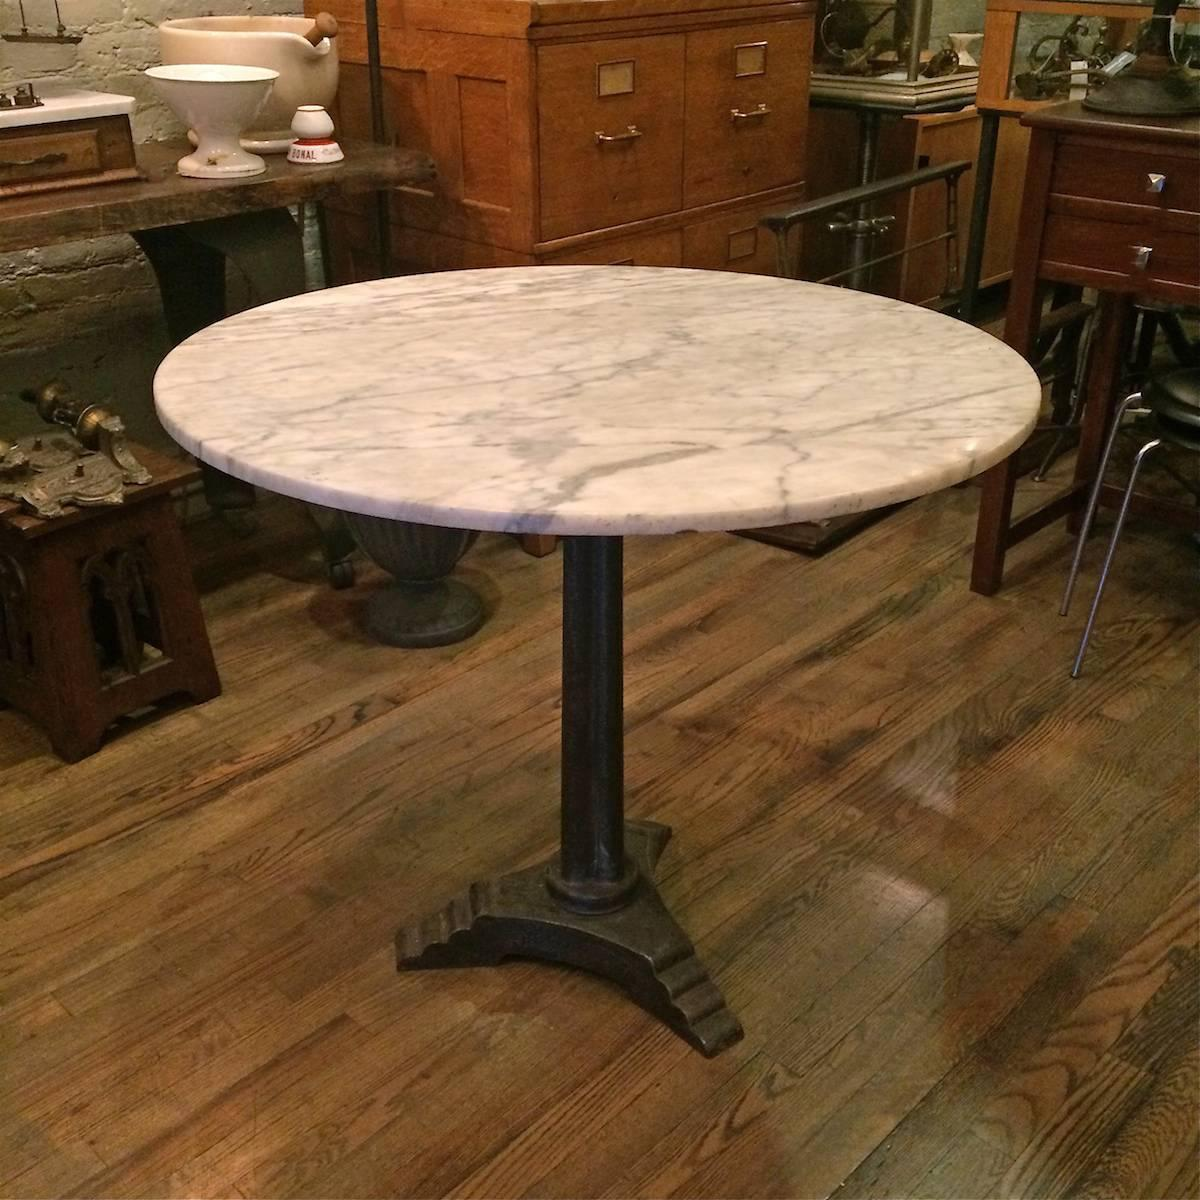 The Foundry Ii Cafe Rollins Dining Table Art Furniture: French Marble Art Deco Pedestal Bistro Café Table At 1stdibs